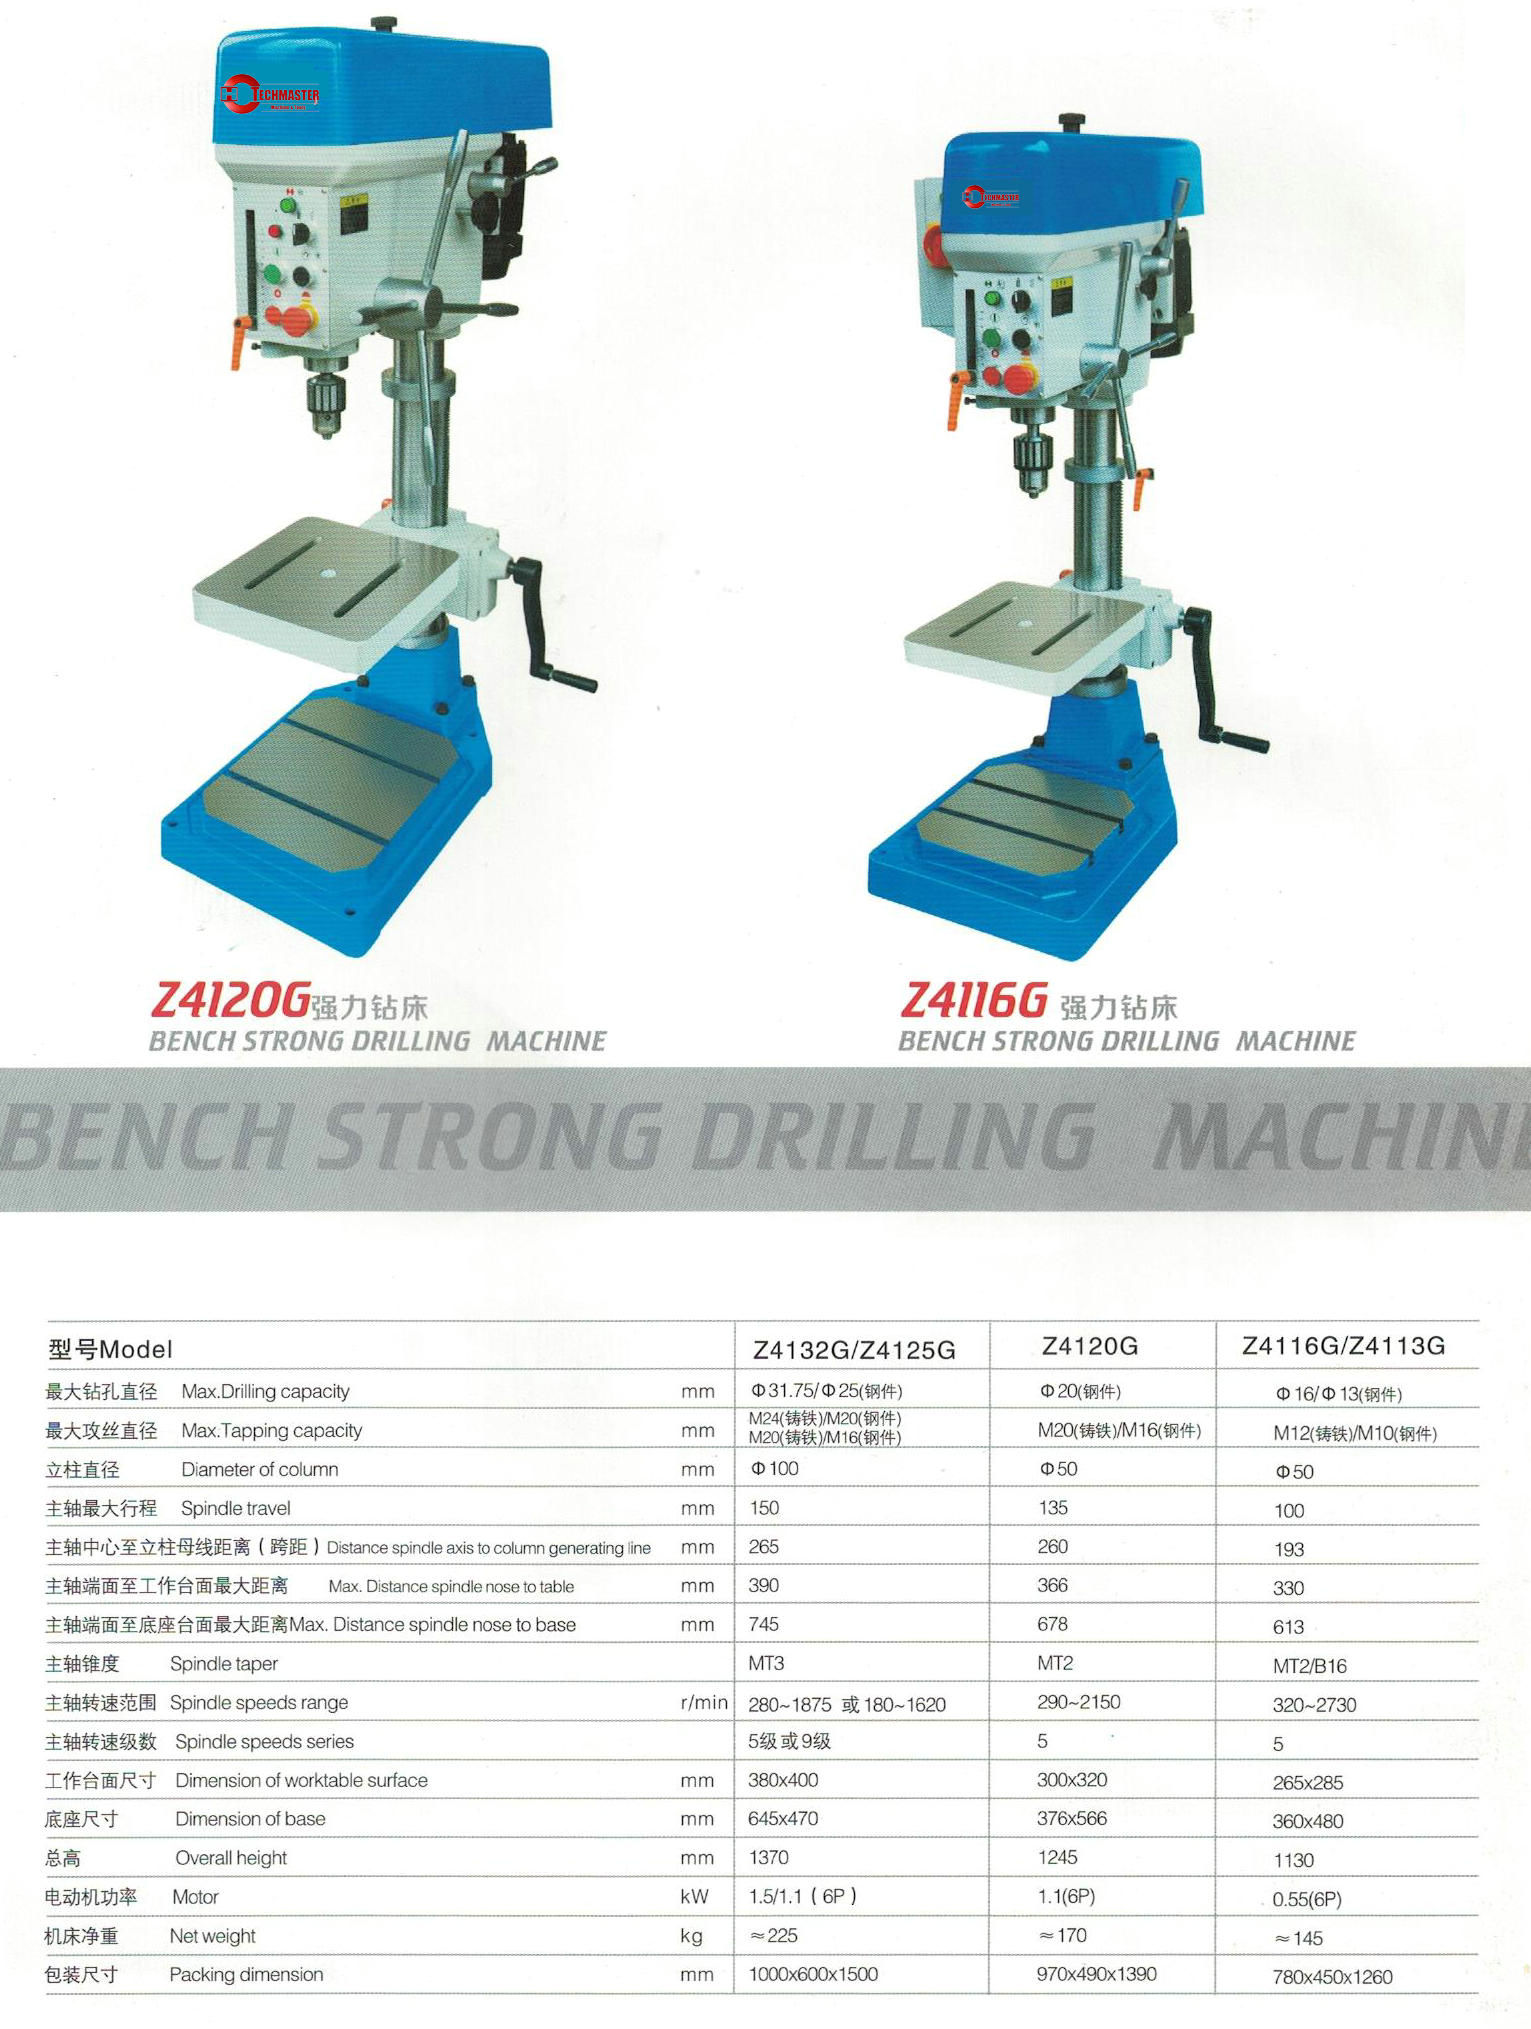 BENCH STRONG DRILLING MACHINE Z4113G